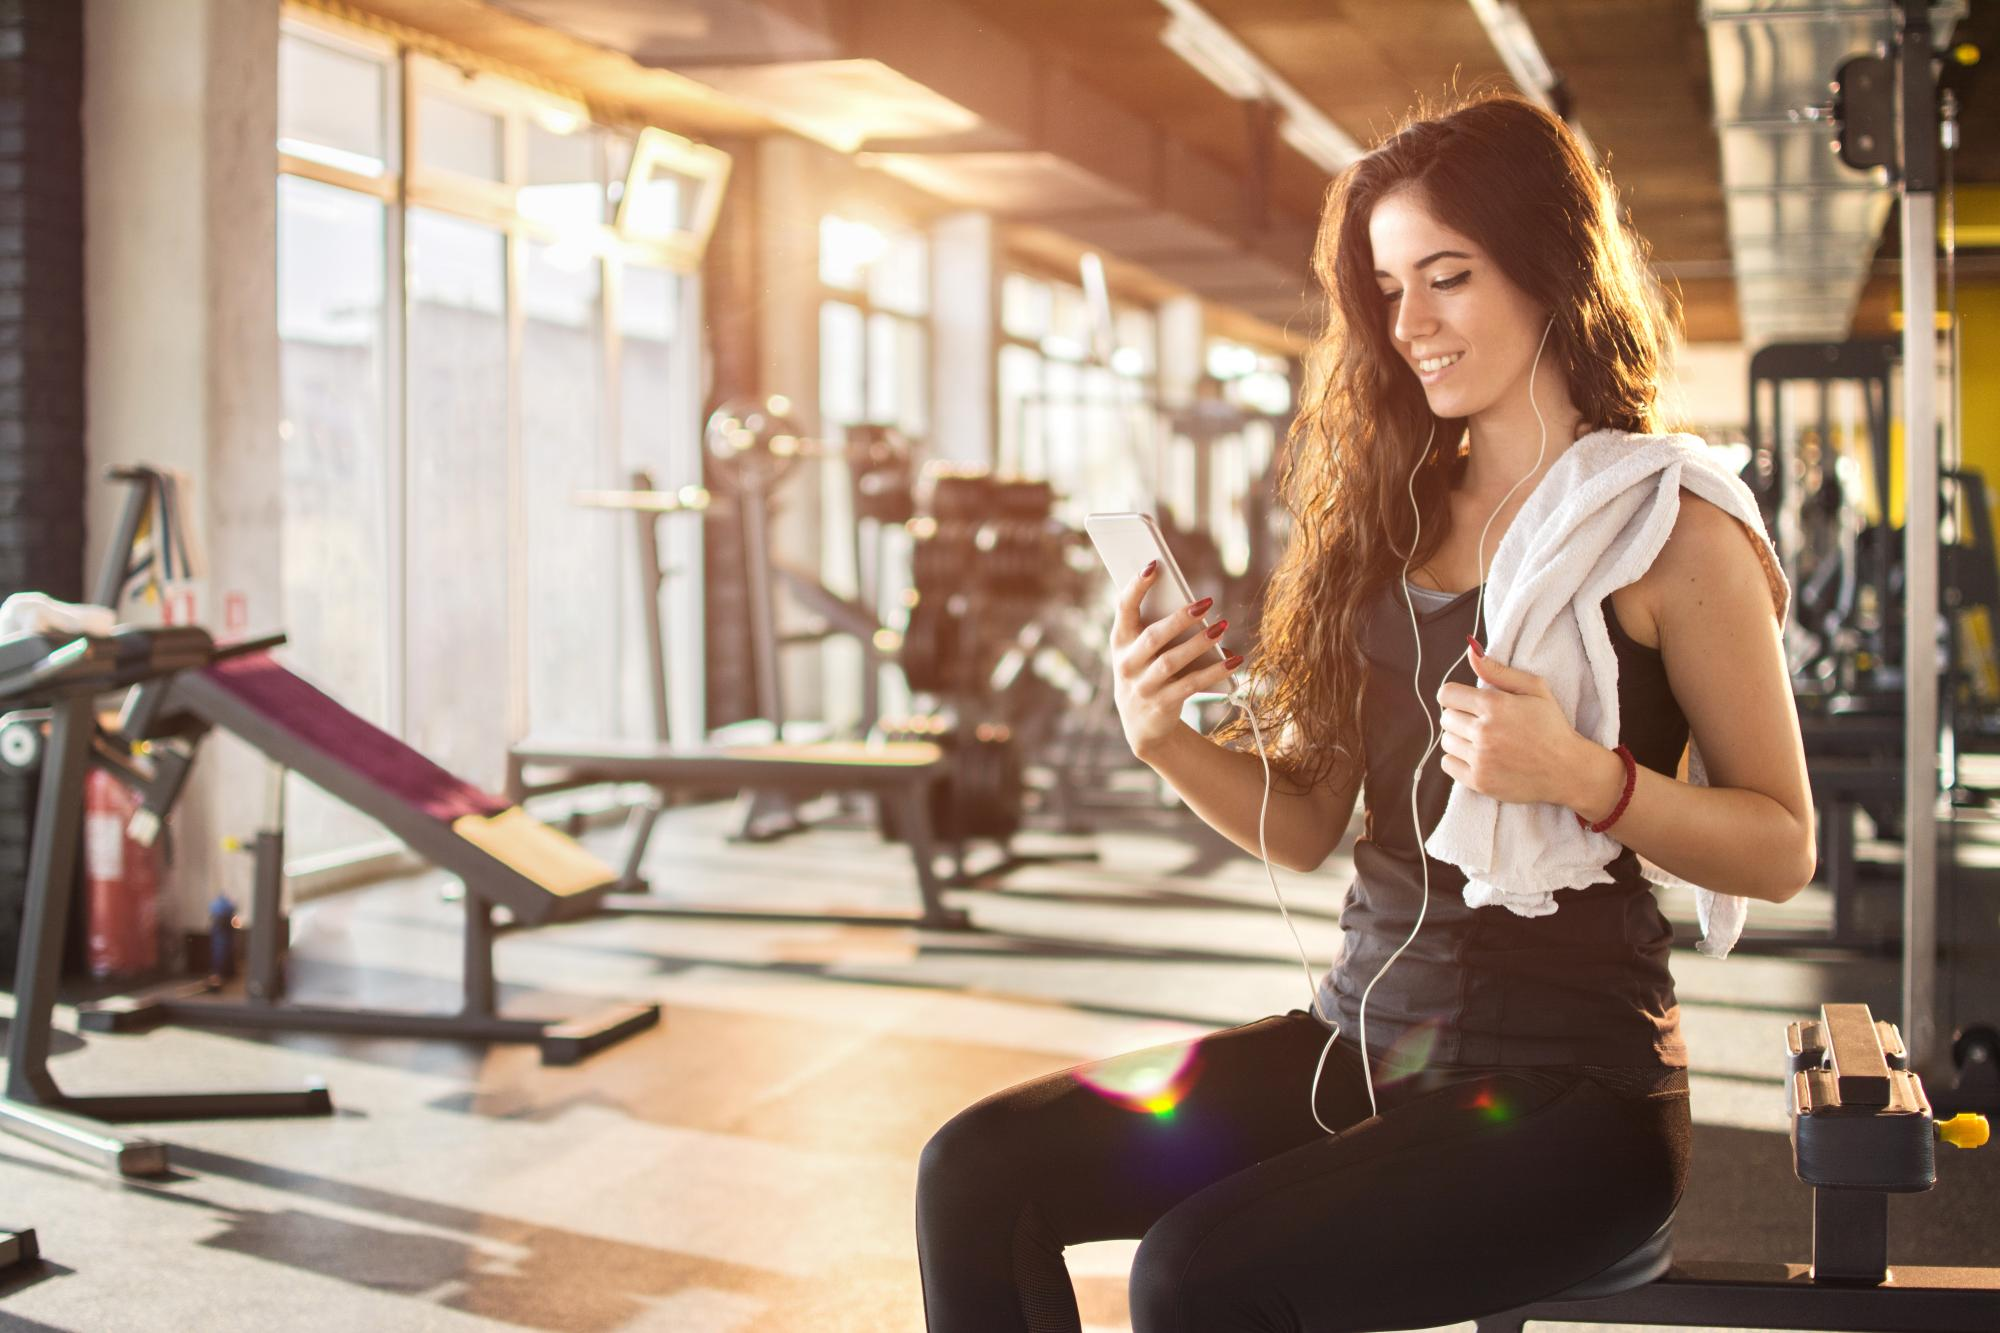 Fitness posts on social media can make you feel worse about your weight